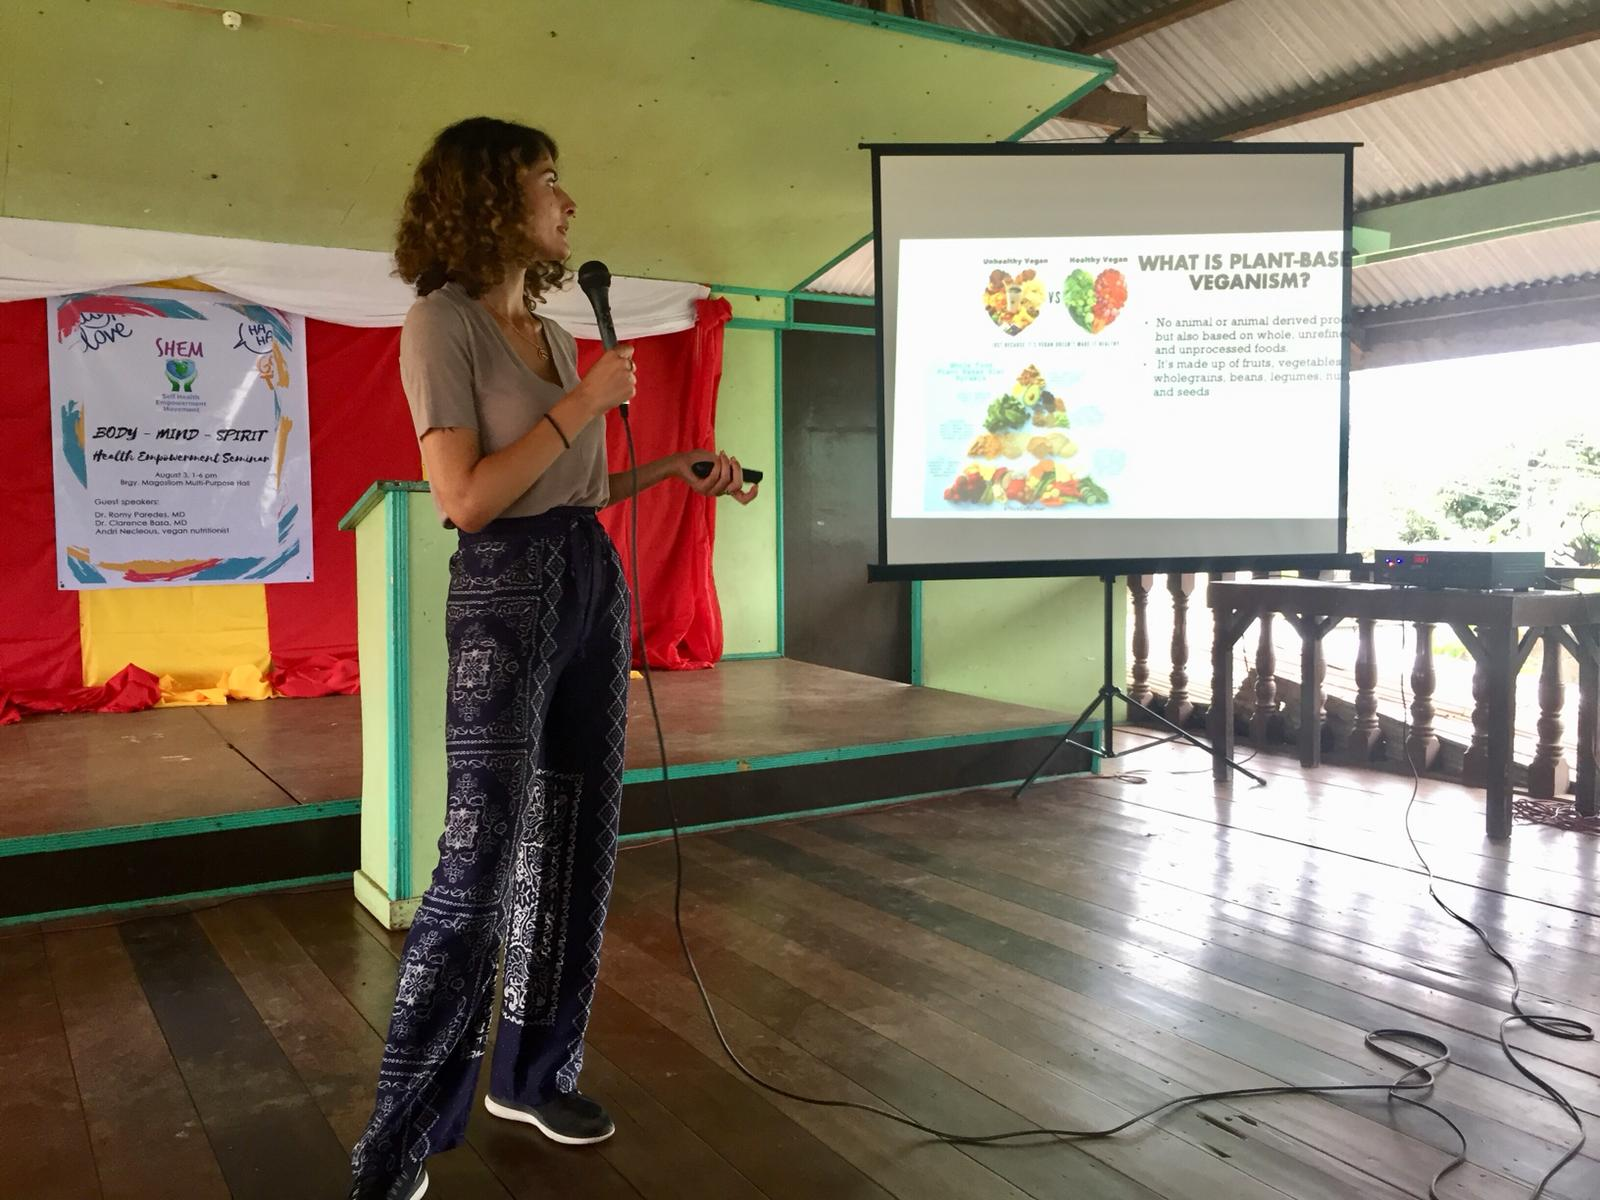 Andri, Vegan Nutritionist from London empowering people to take control of their health